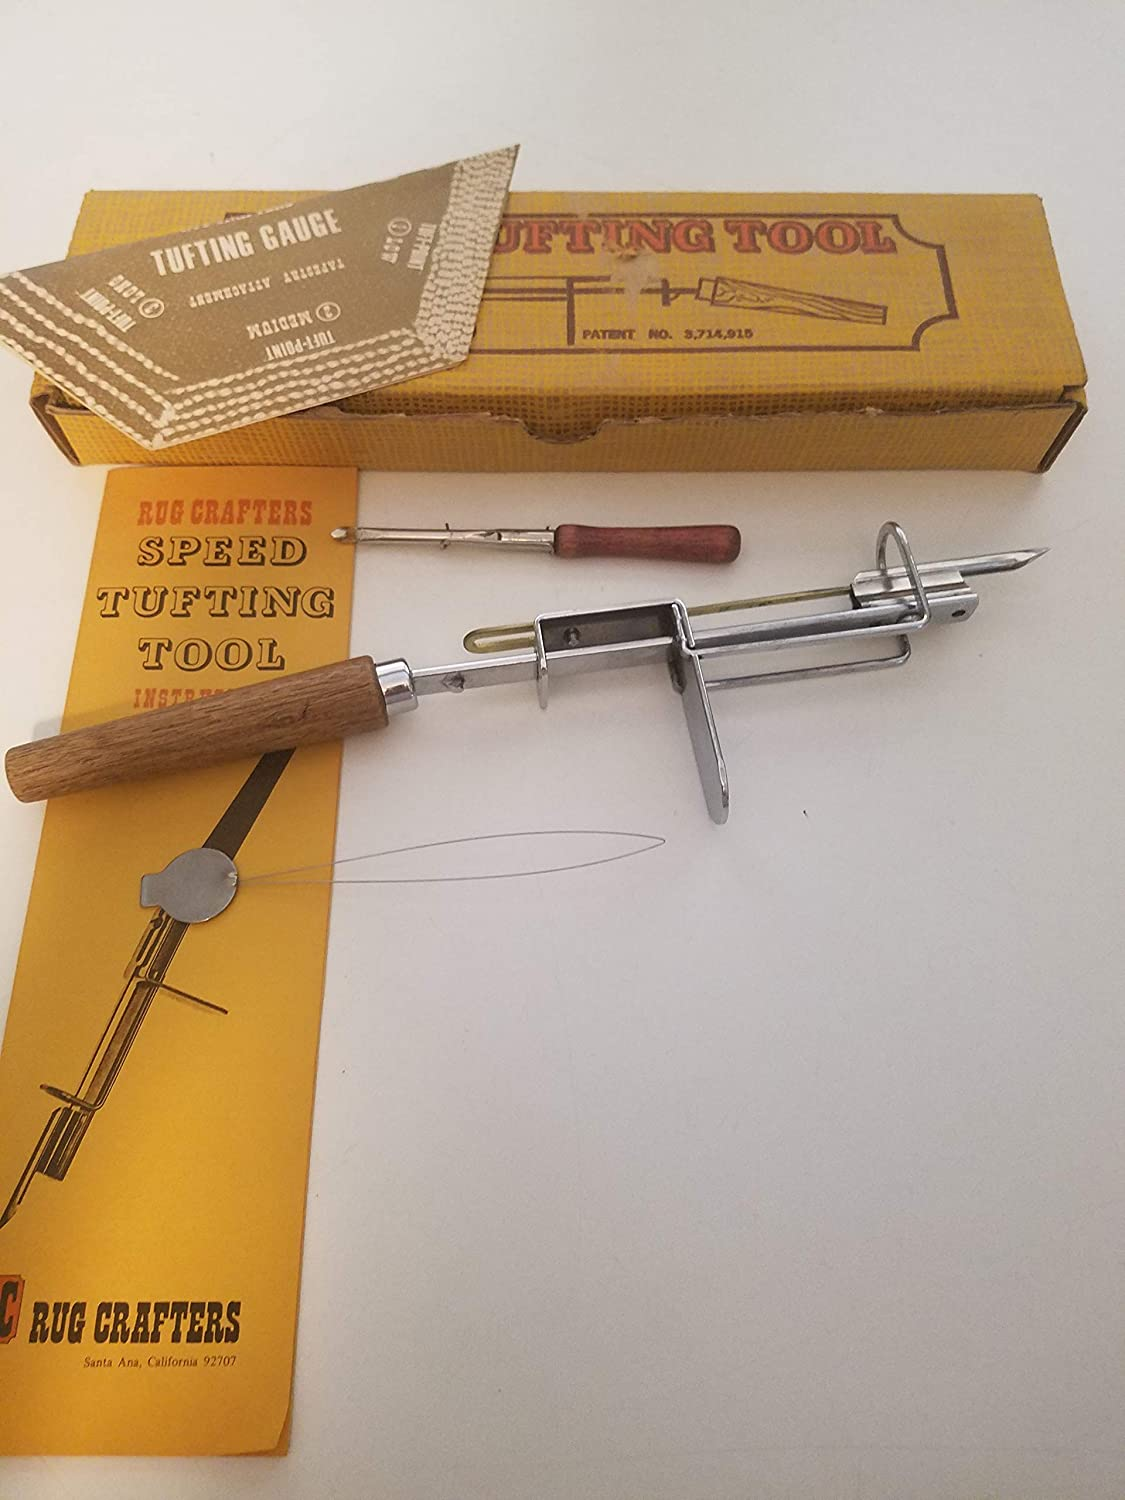 Rug Crafters Speed Tufting Tool Set (see condition description)